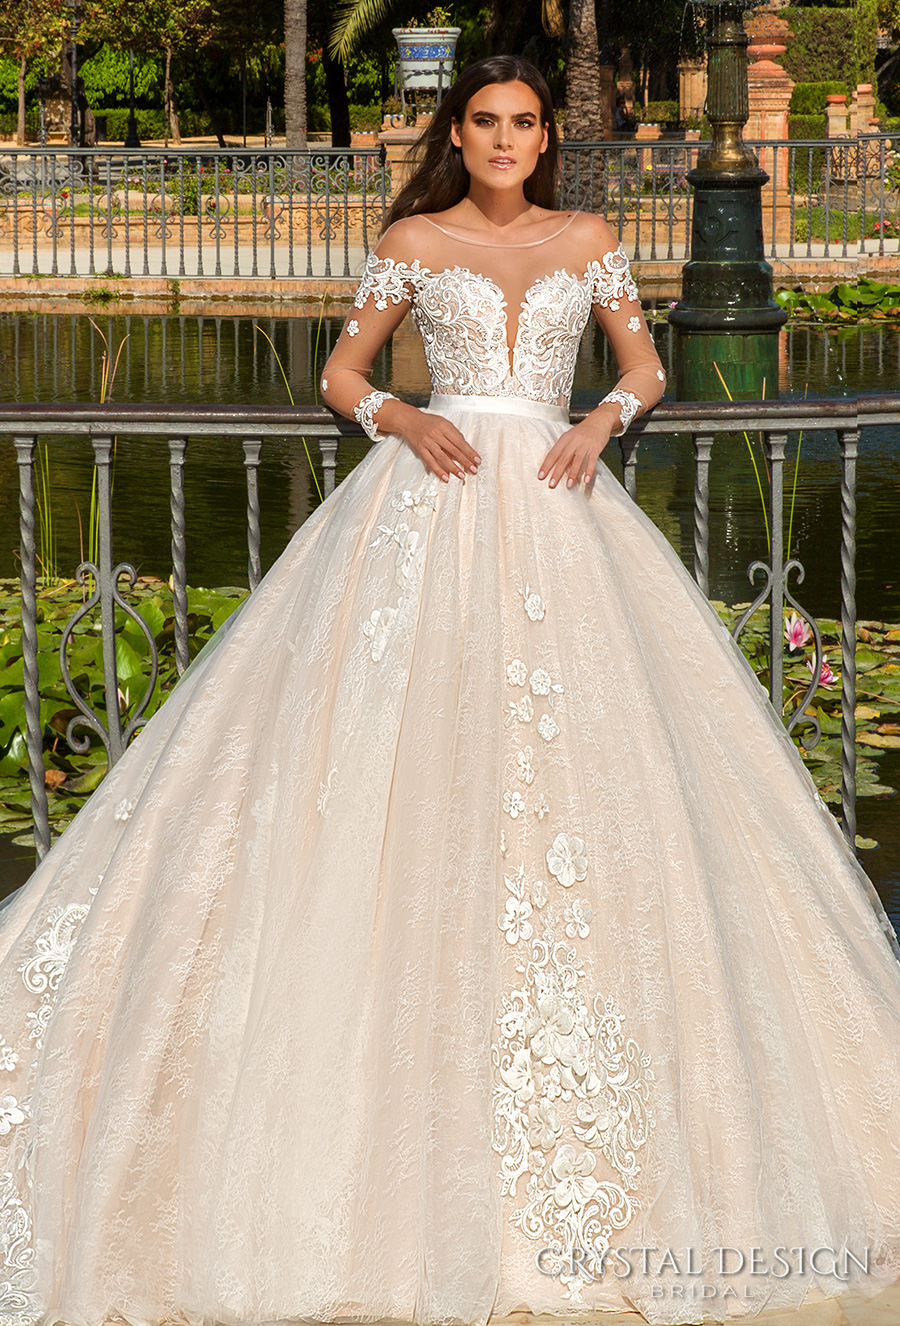 Beautiful Deep Sweetheart Neckline Wedding Dress Ideas - Awesome ...